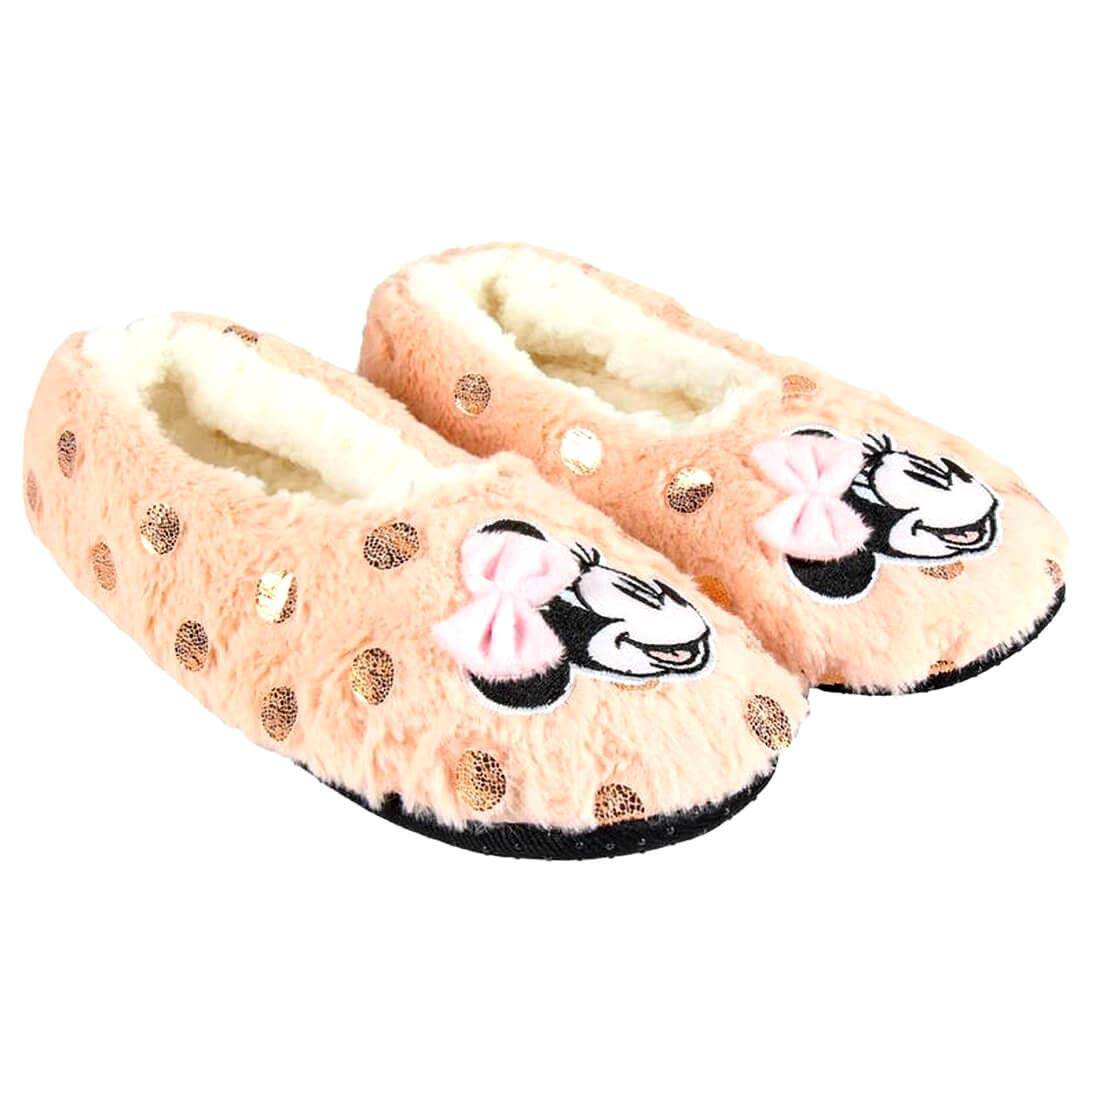 Non-Slip Sole Disney Slippers Girls Minnie Mouse One Size 4-7 UK 36-41 EU Pink and Gold